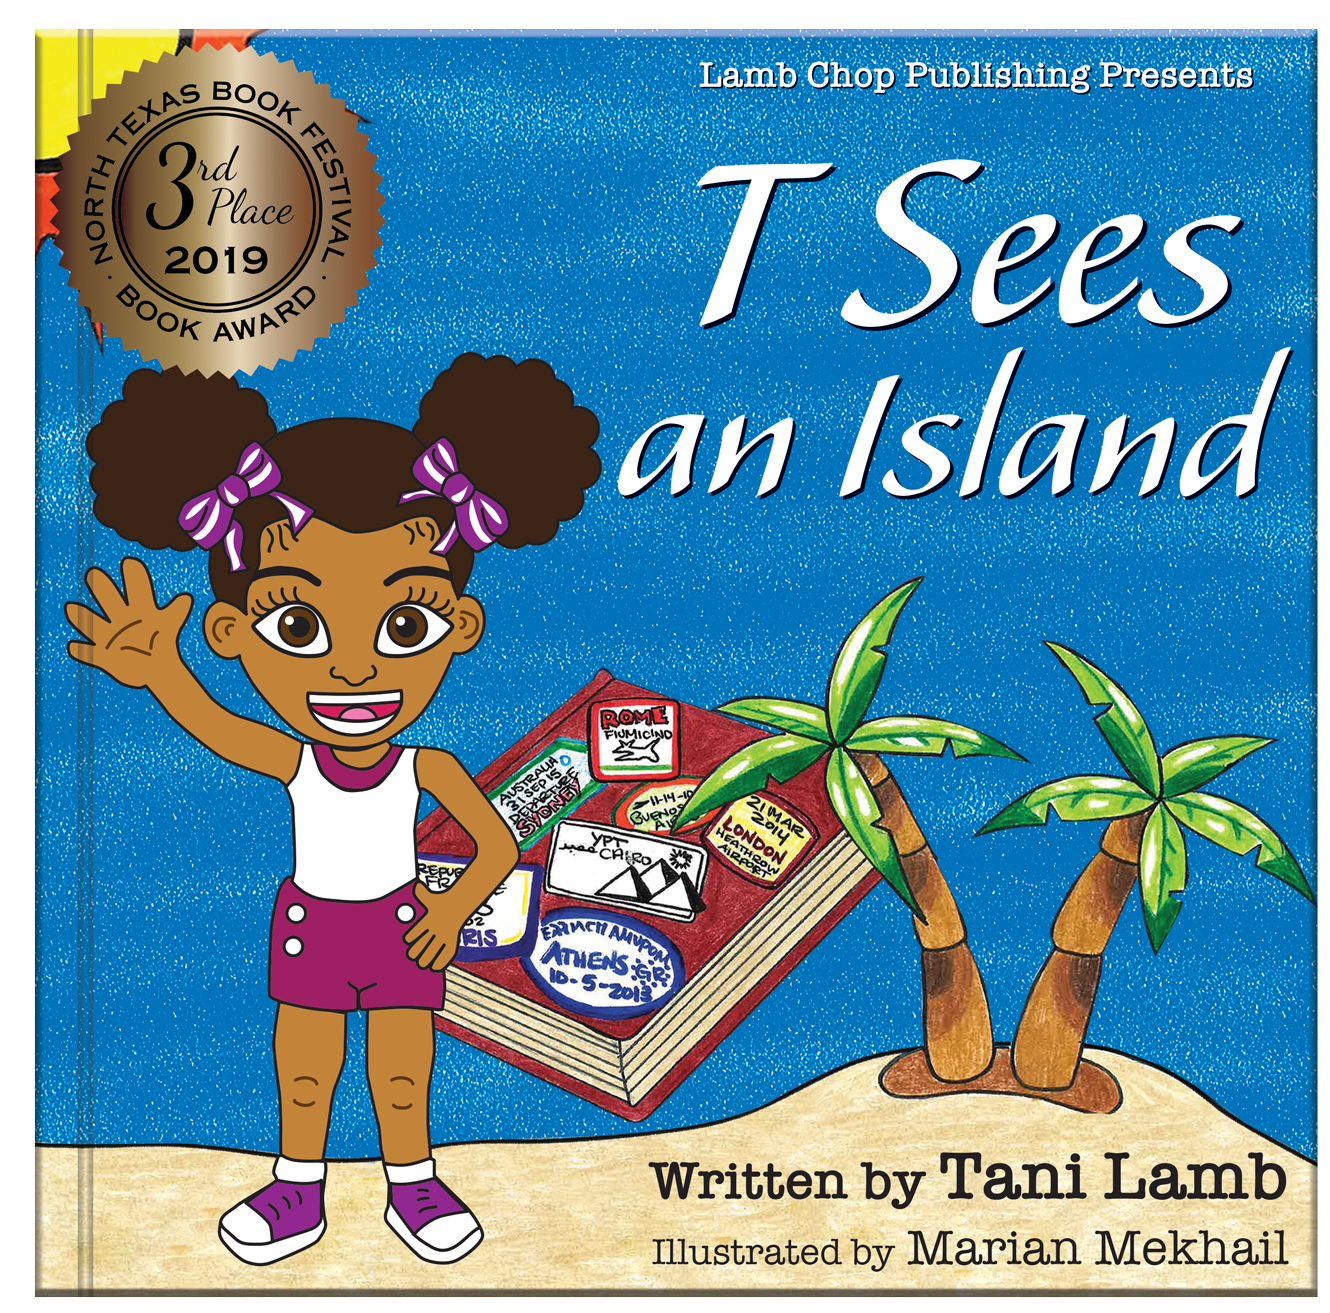 T Sees an Island - Childhood is the period when imagination runs wild and children are willing and eager to learn. This is no exception for little T and her friend Lee. On their inaugural adventure, T and her friend Lee explore the U.S. Virgin Islands. They firsthand, experience the colorful culture and even have time for a very special excursion. This amazing adventure is made possible by a magical discovery that little T makes while exploring her sister's closet. The discovery will change and enrich T's life forever.